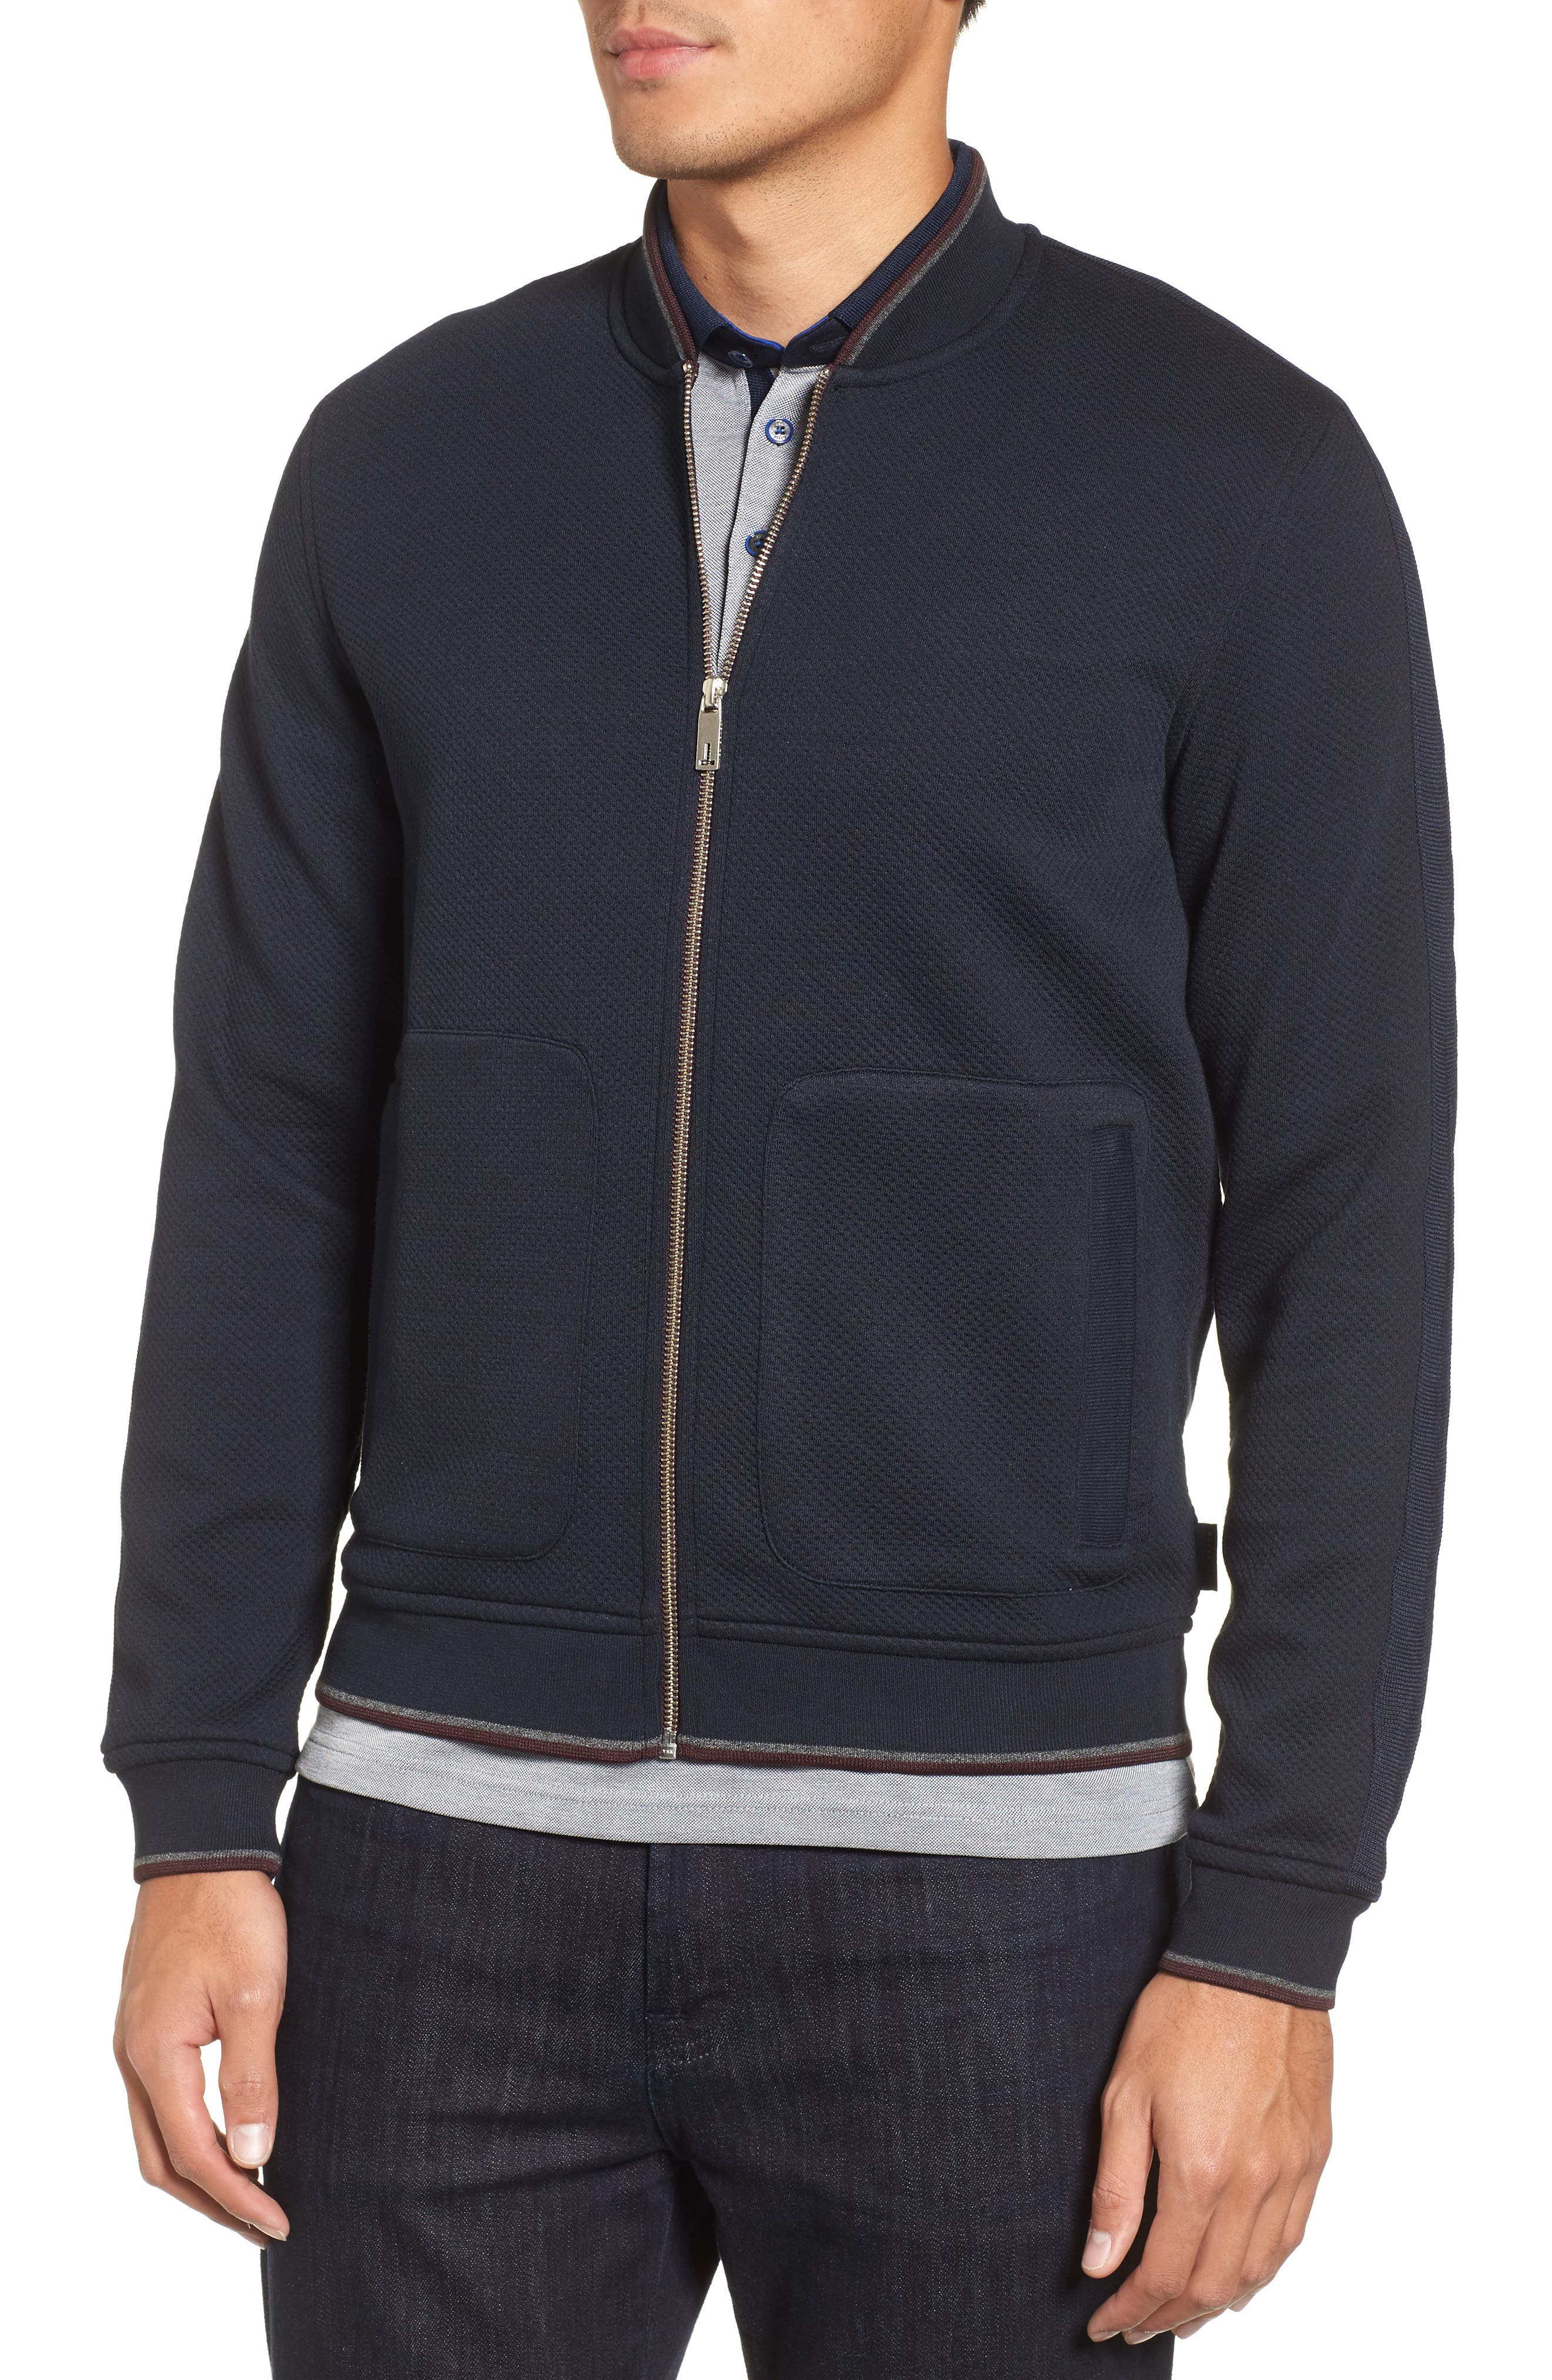 Whatts Trim Fit Textured Bomber Jacket,                             Alternate thumbnail 4, color,                             Navy